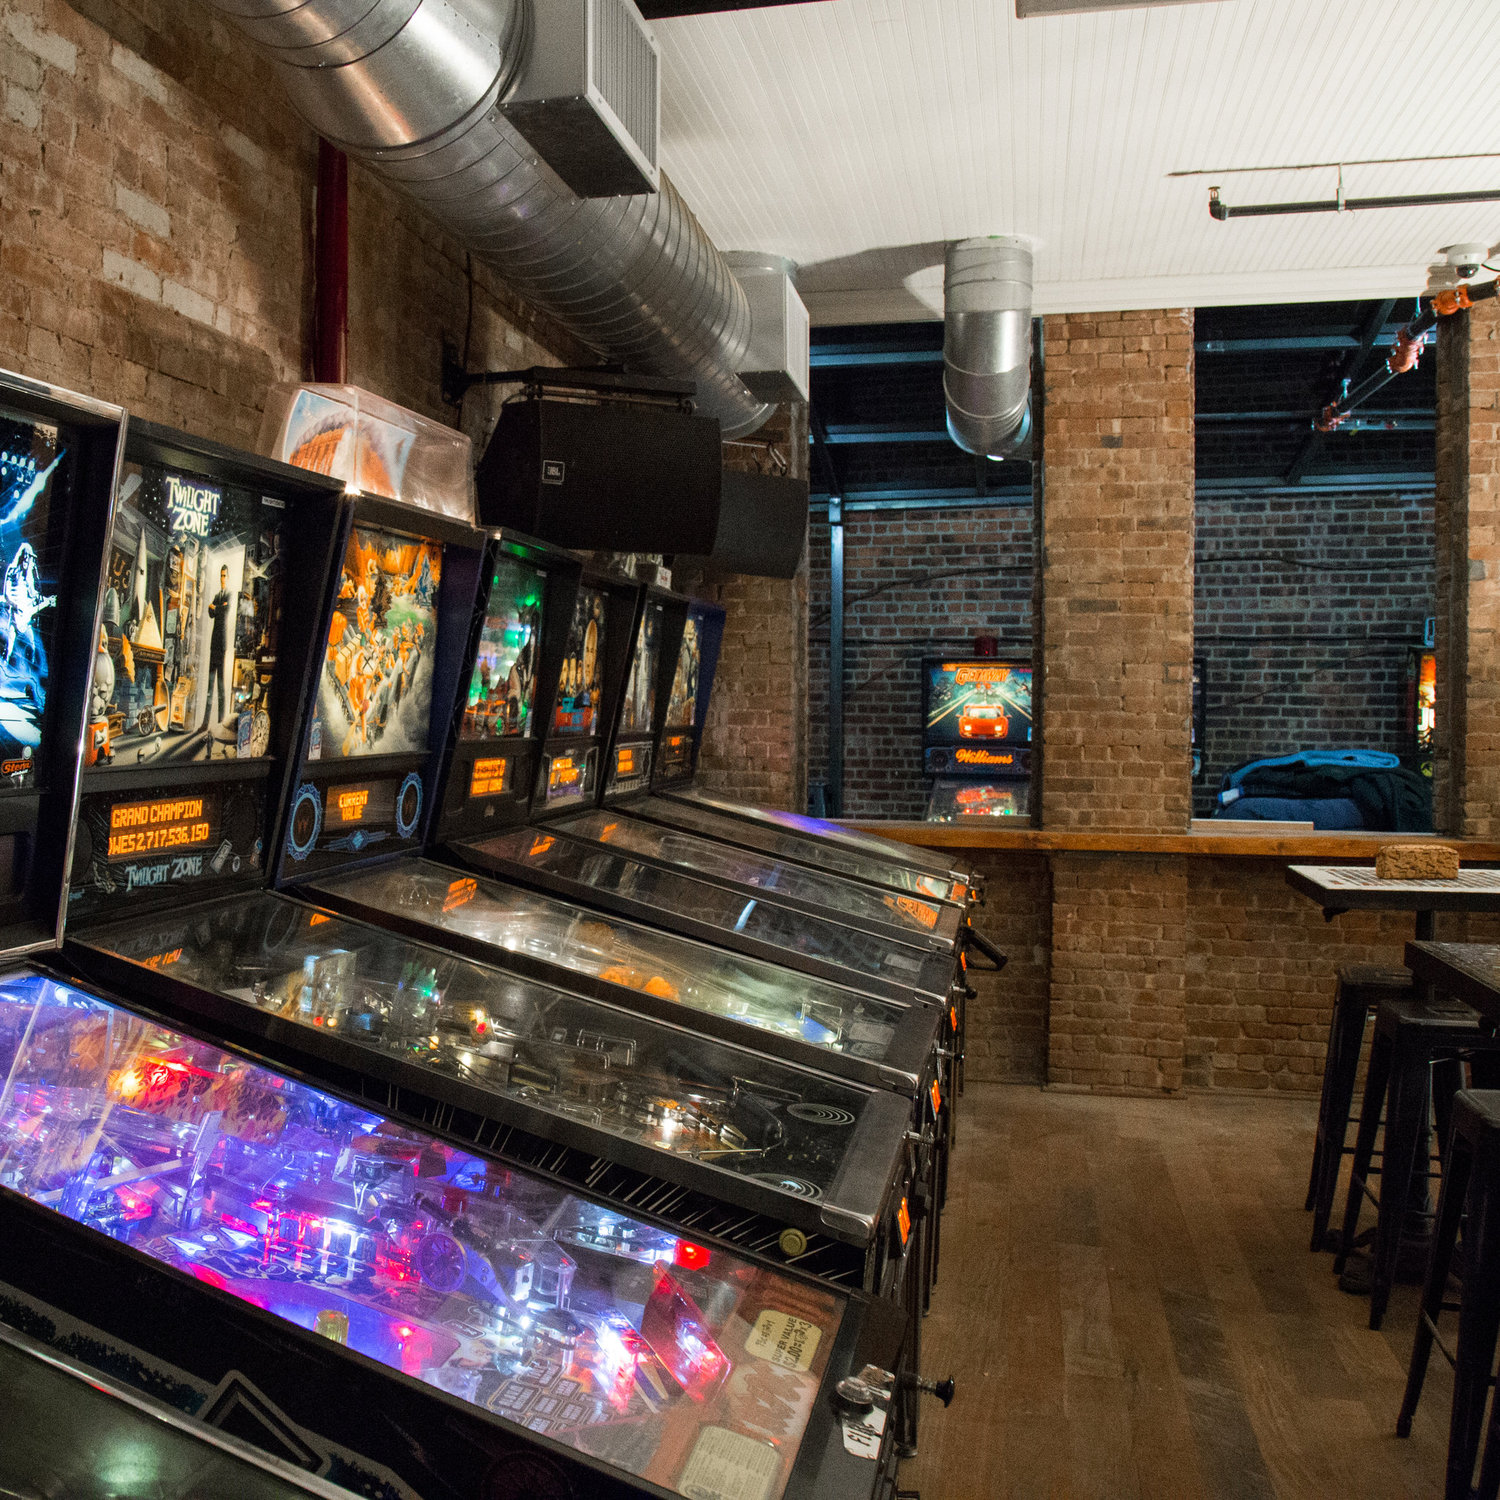 A row of pinball machines in the remodeled back room.